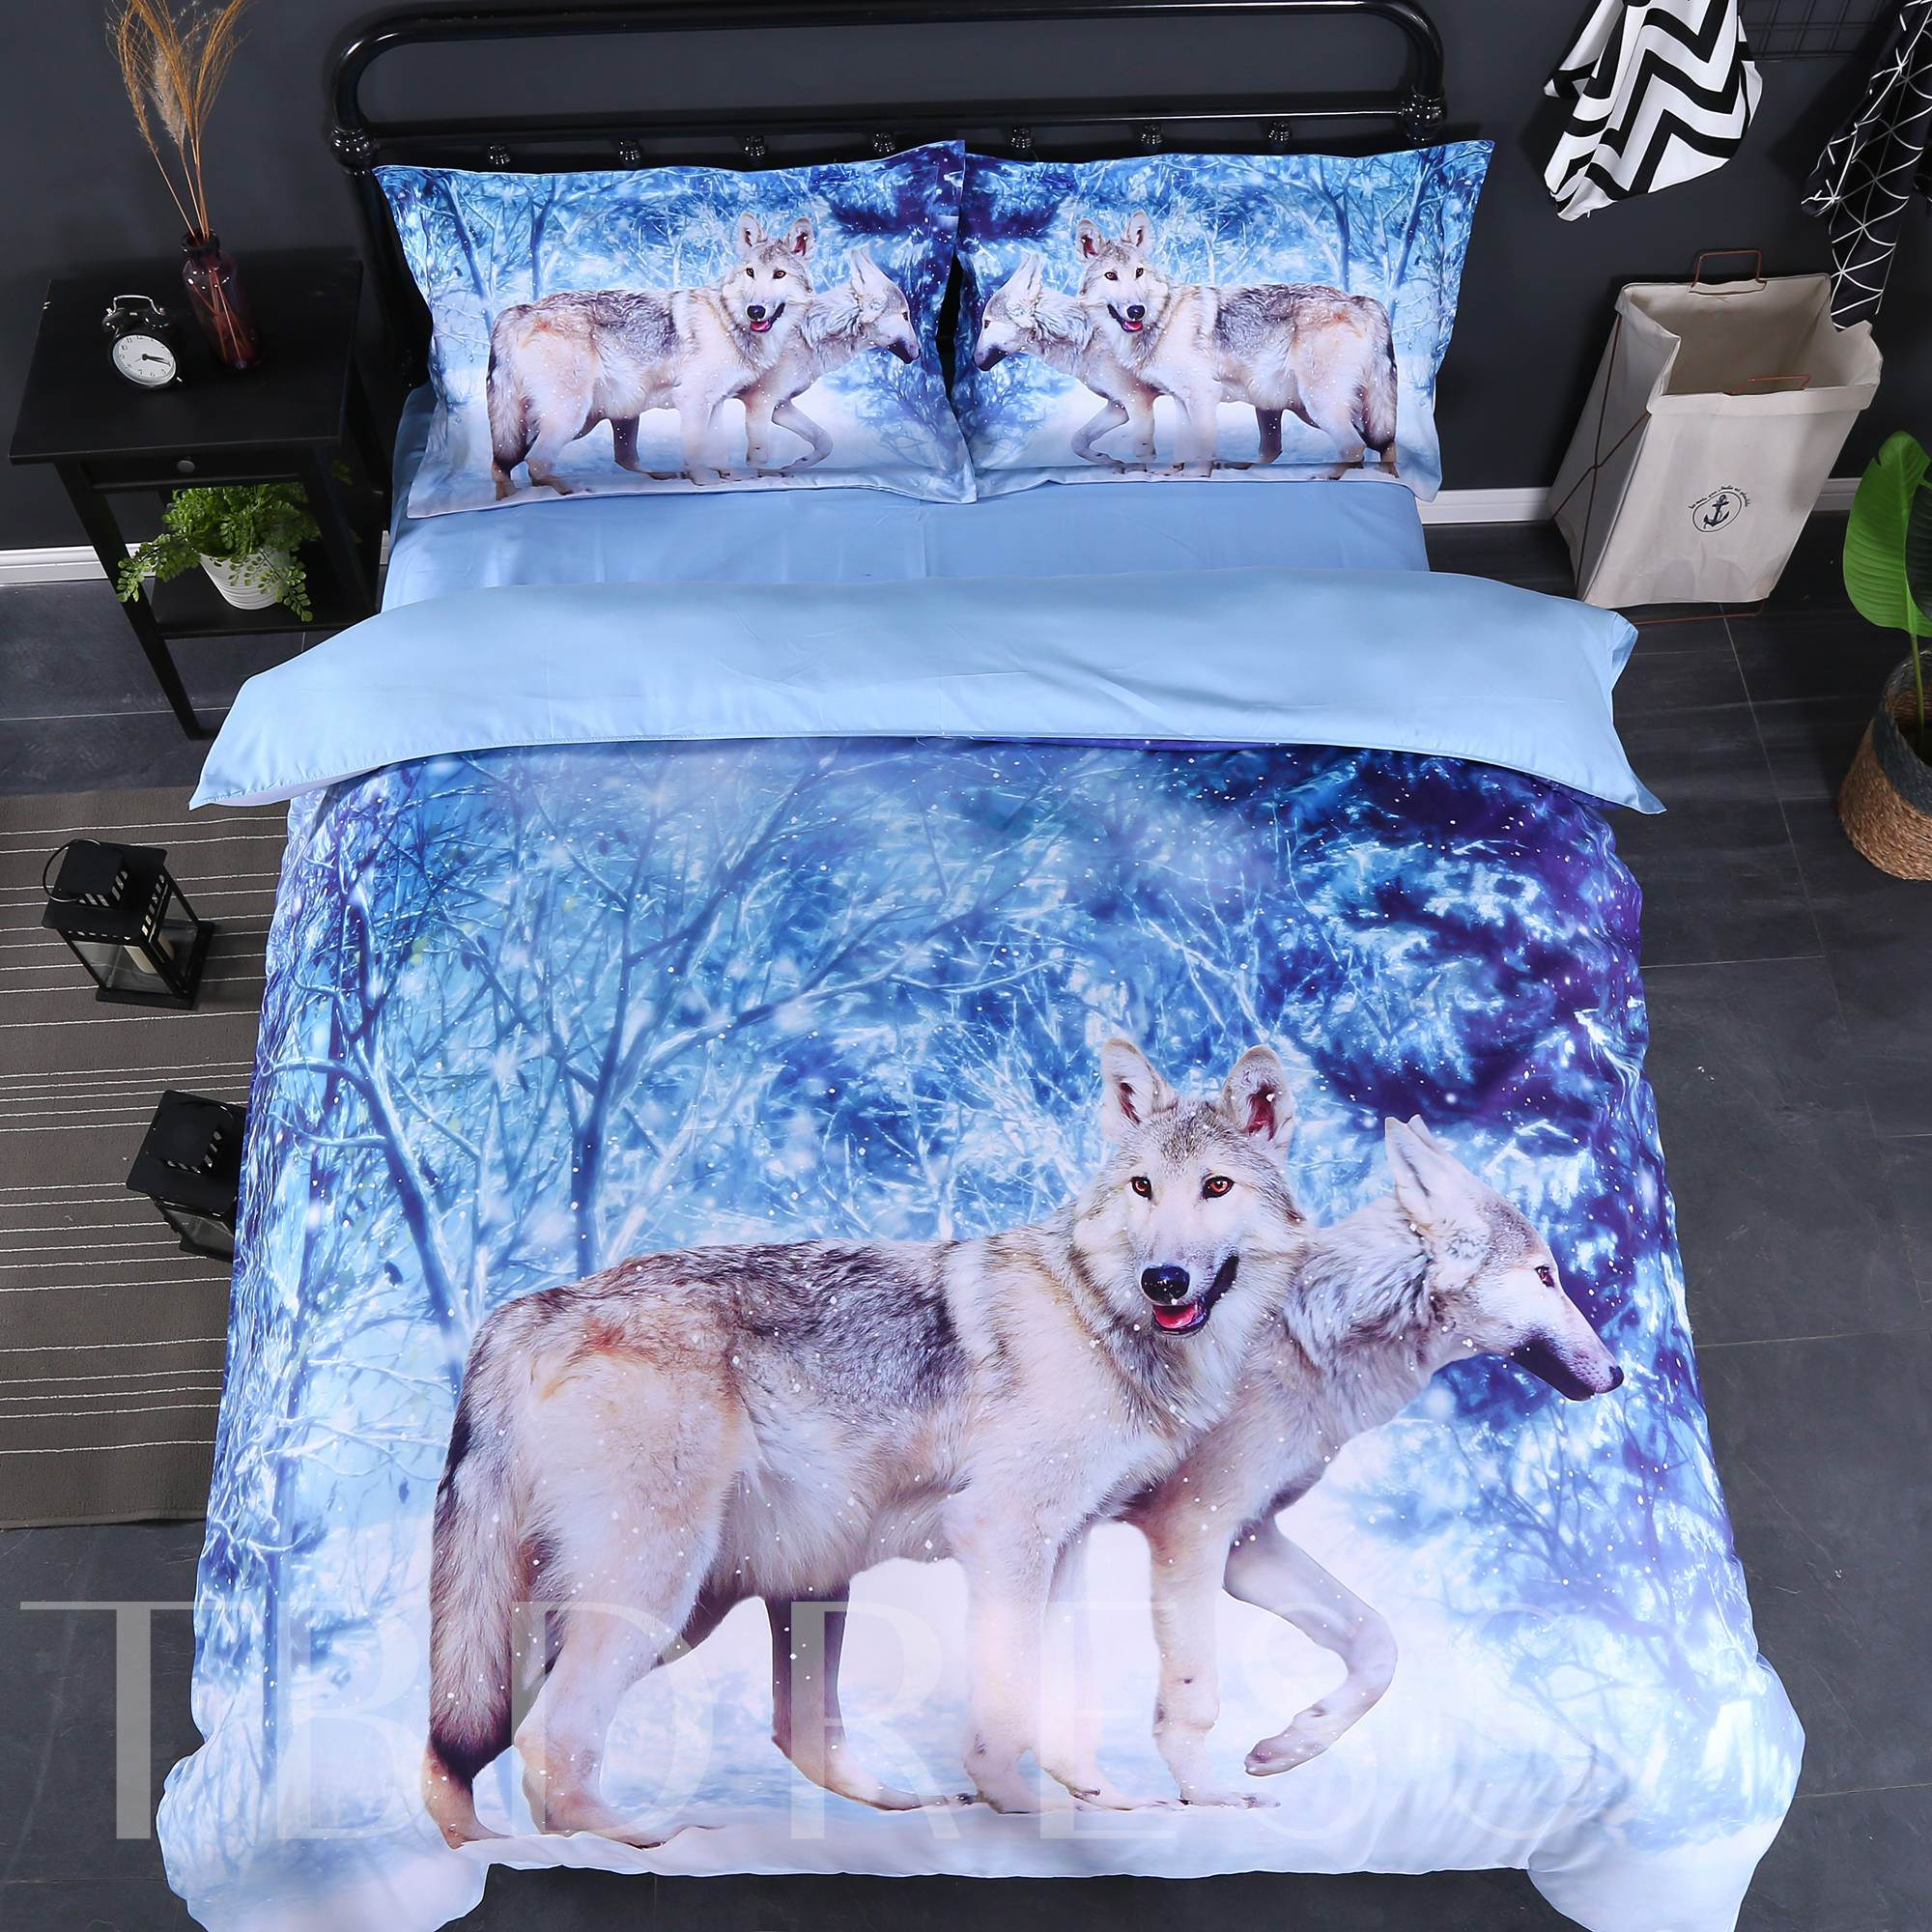 3D Wolf in Winter Forest Printed Cotton 4-Piece Bedding Sets/Duvet Covers